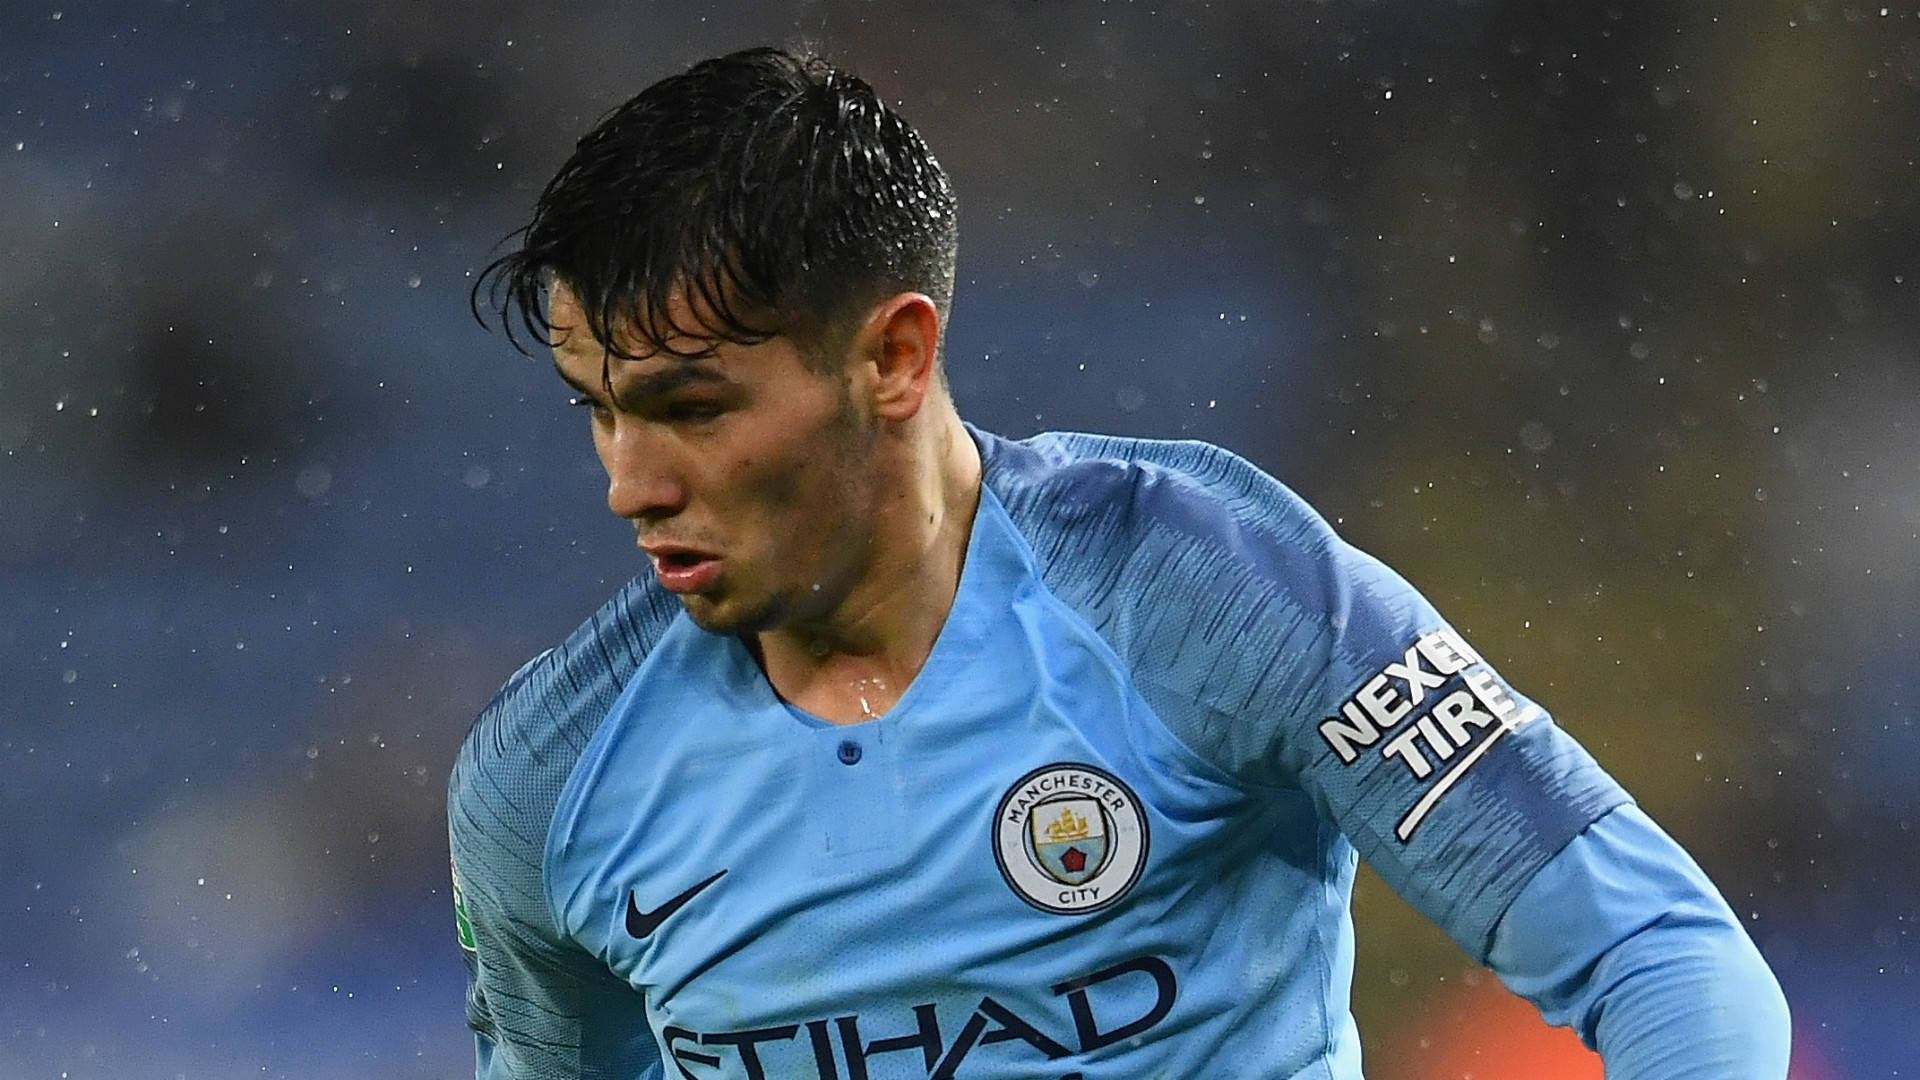 Manchester City's Brahim Diaz close to Real Madrid move